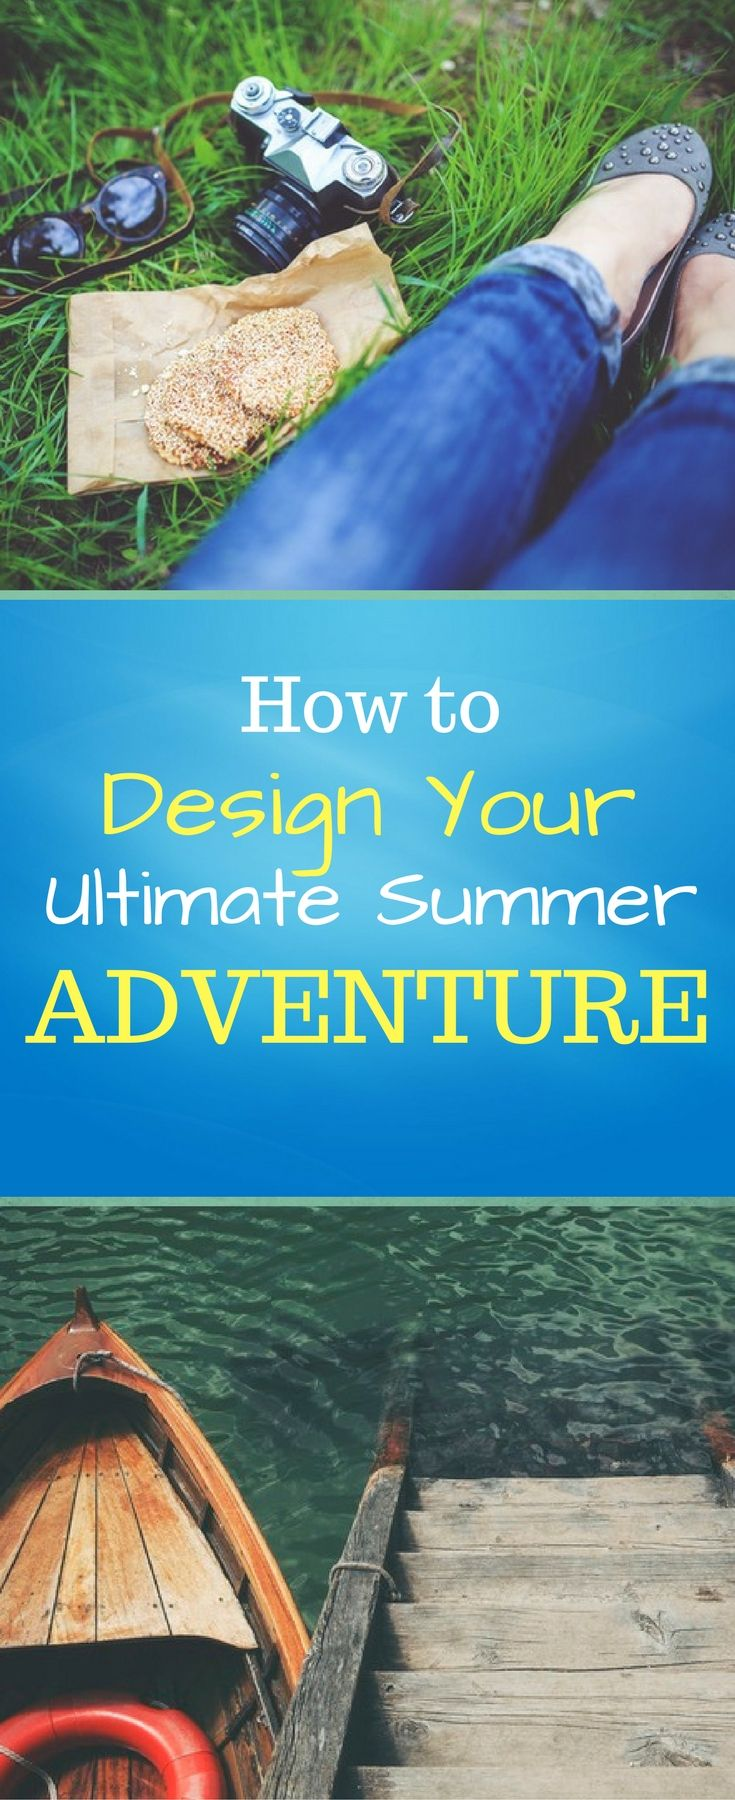 Looking for something fun and unique this summer? Learn how to create your own ultimate summer adventure!